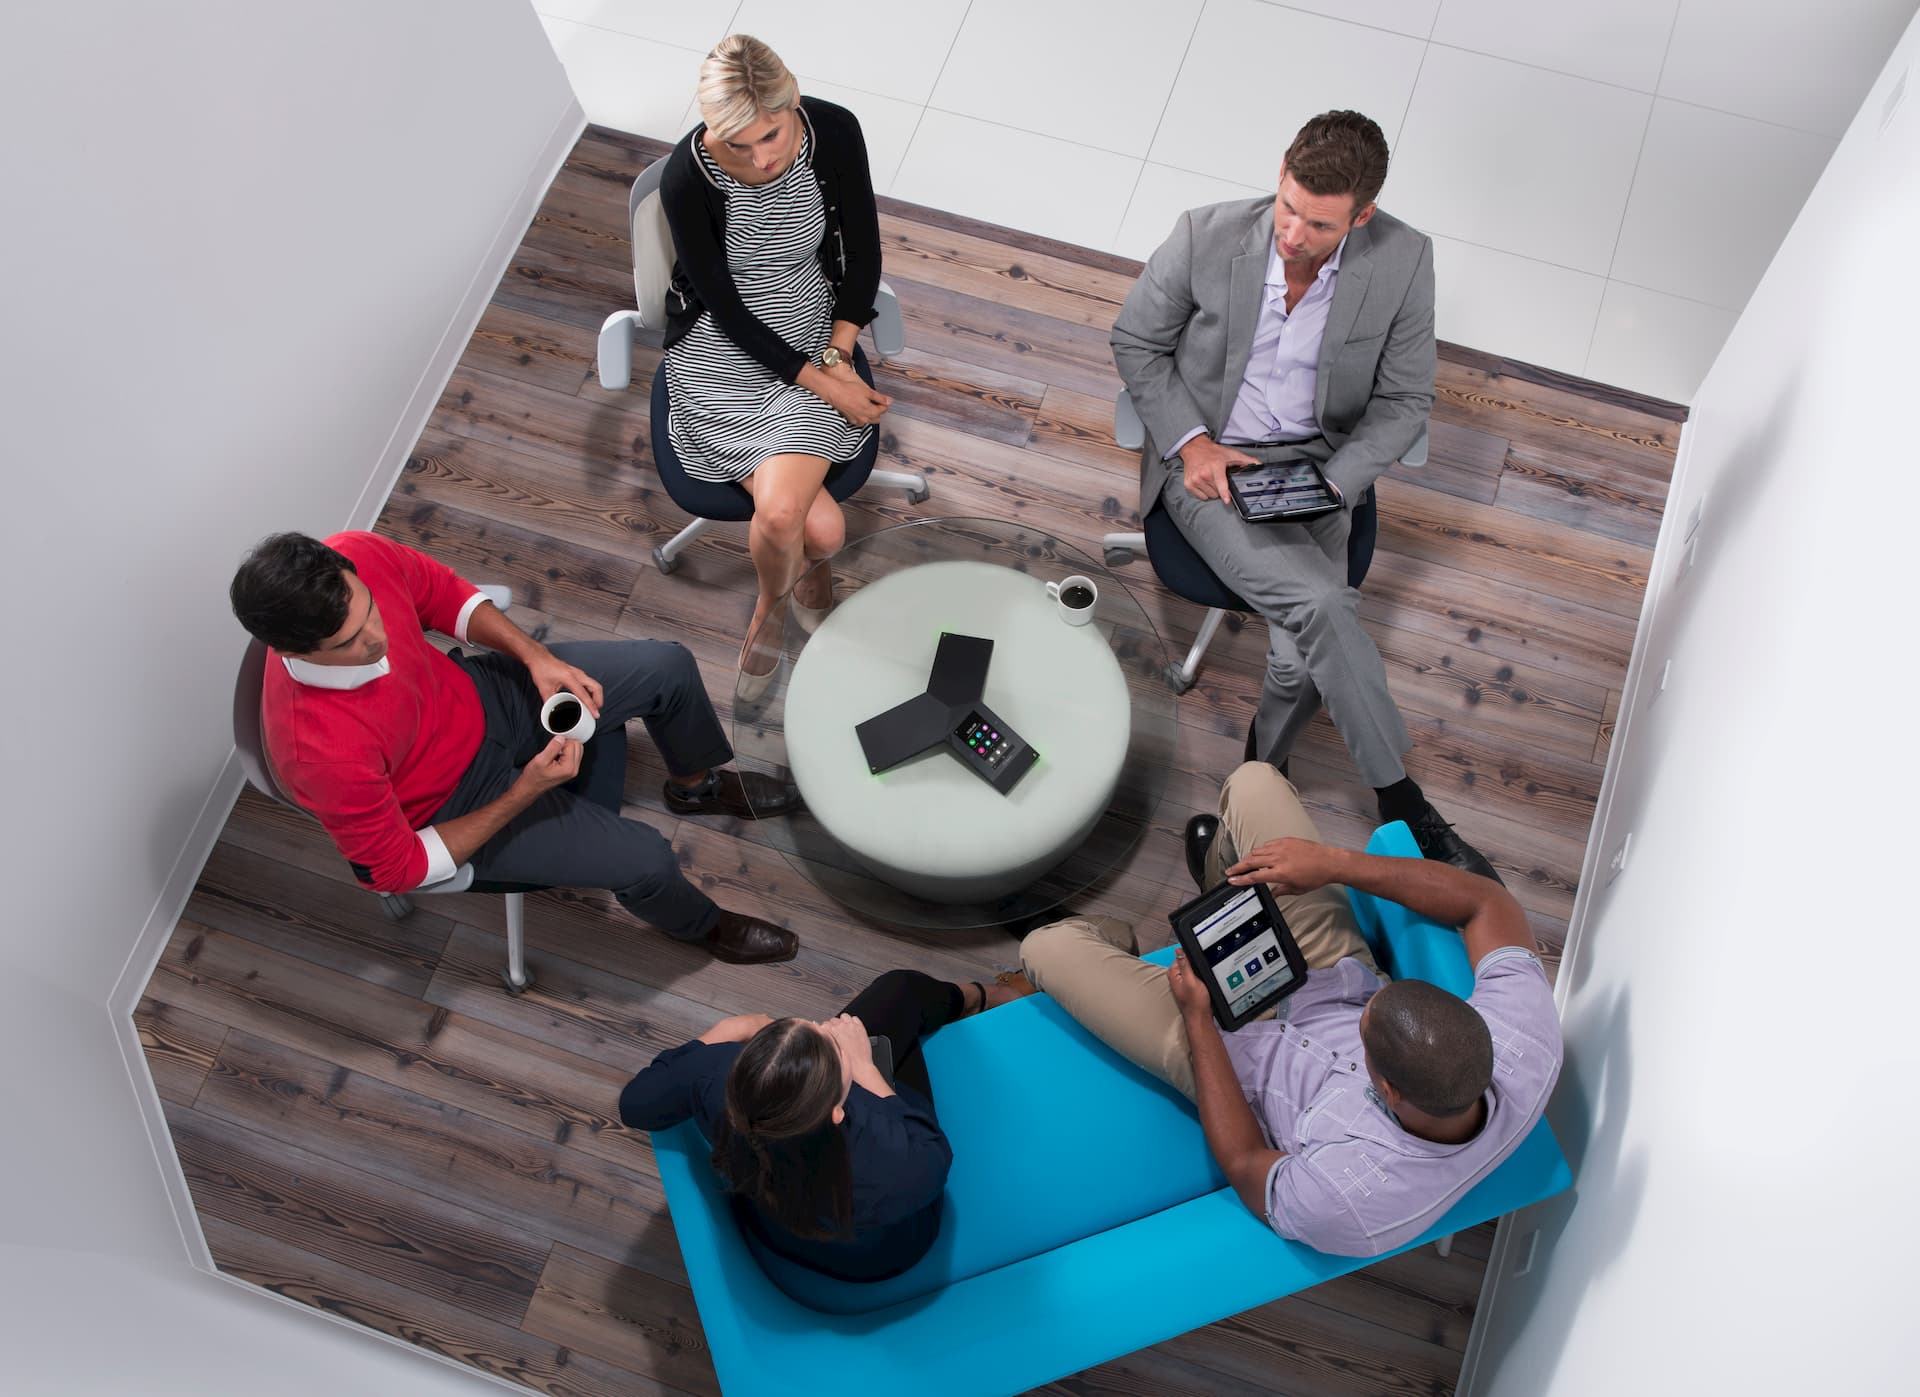 People collaborating around a Polycom conferencing solution